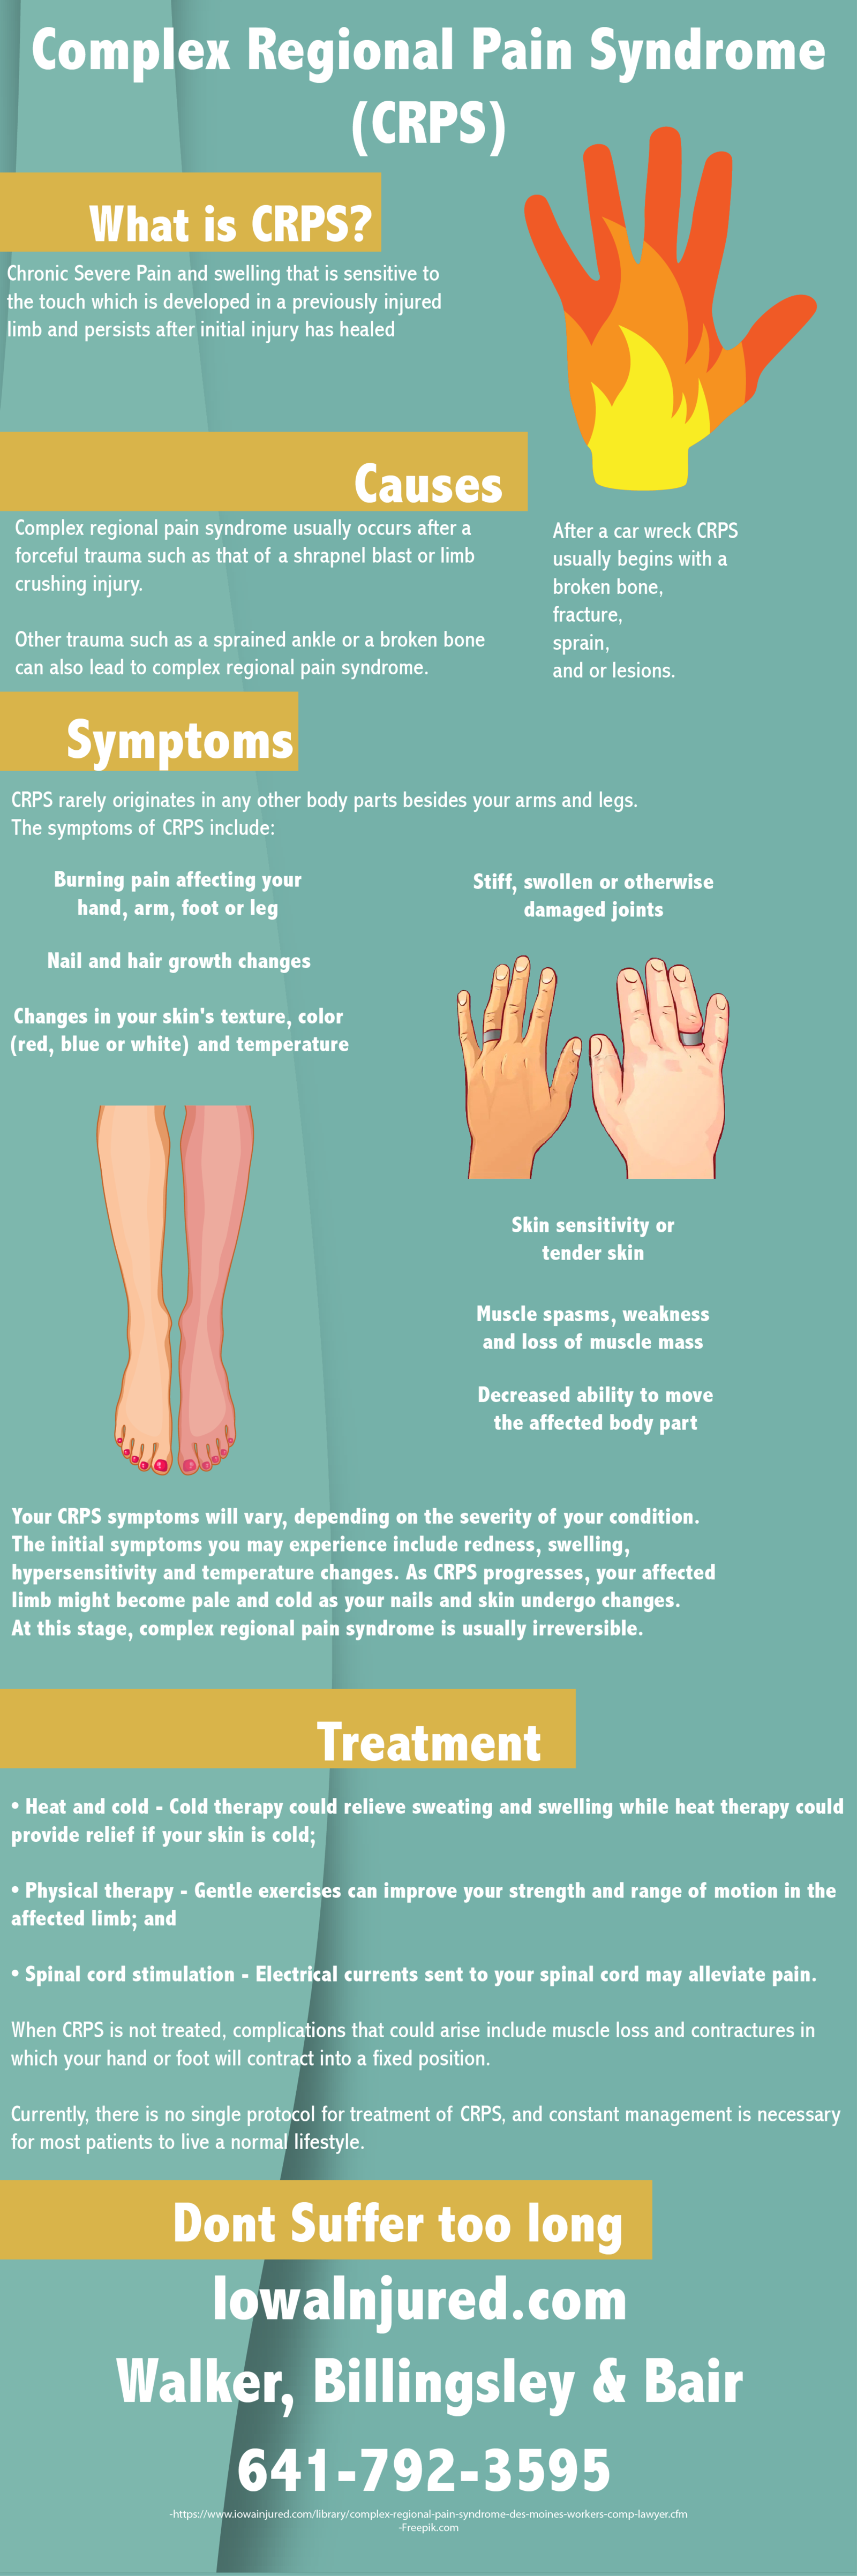 Complex regional pain syndrome crps infographic symptoms and causes